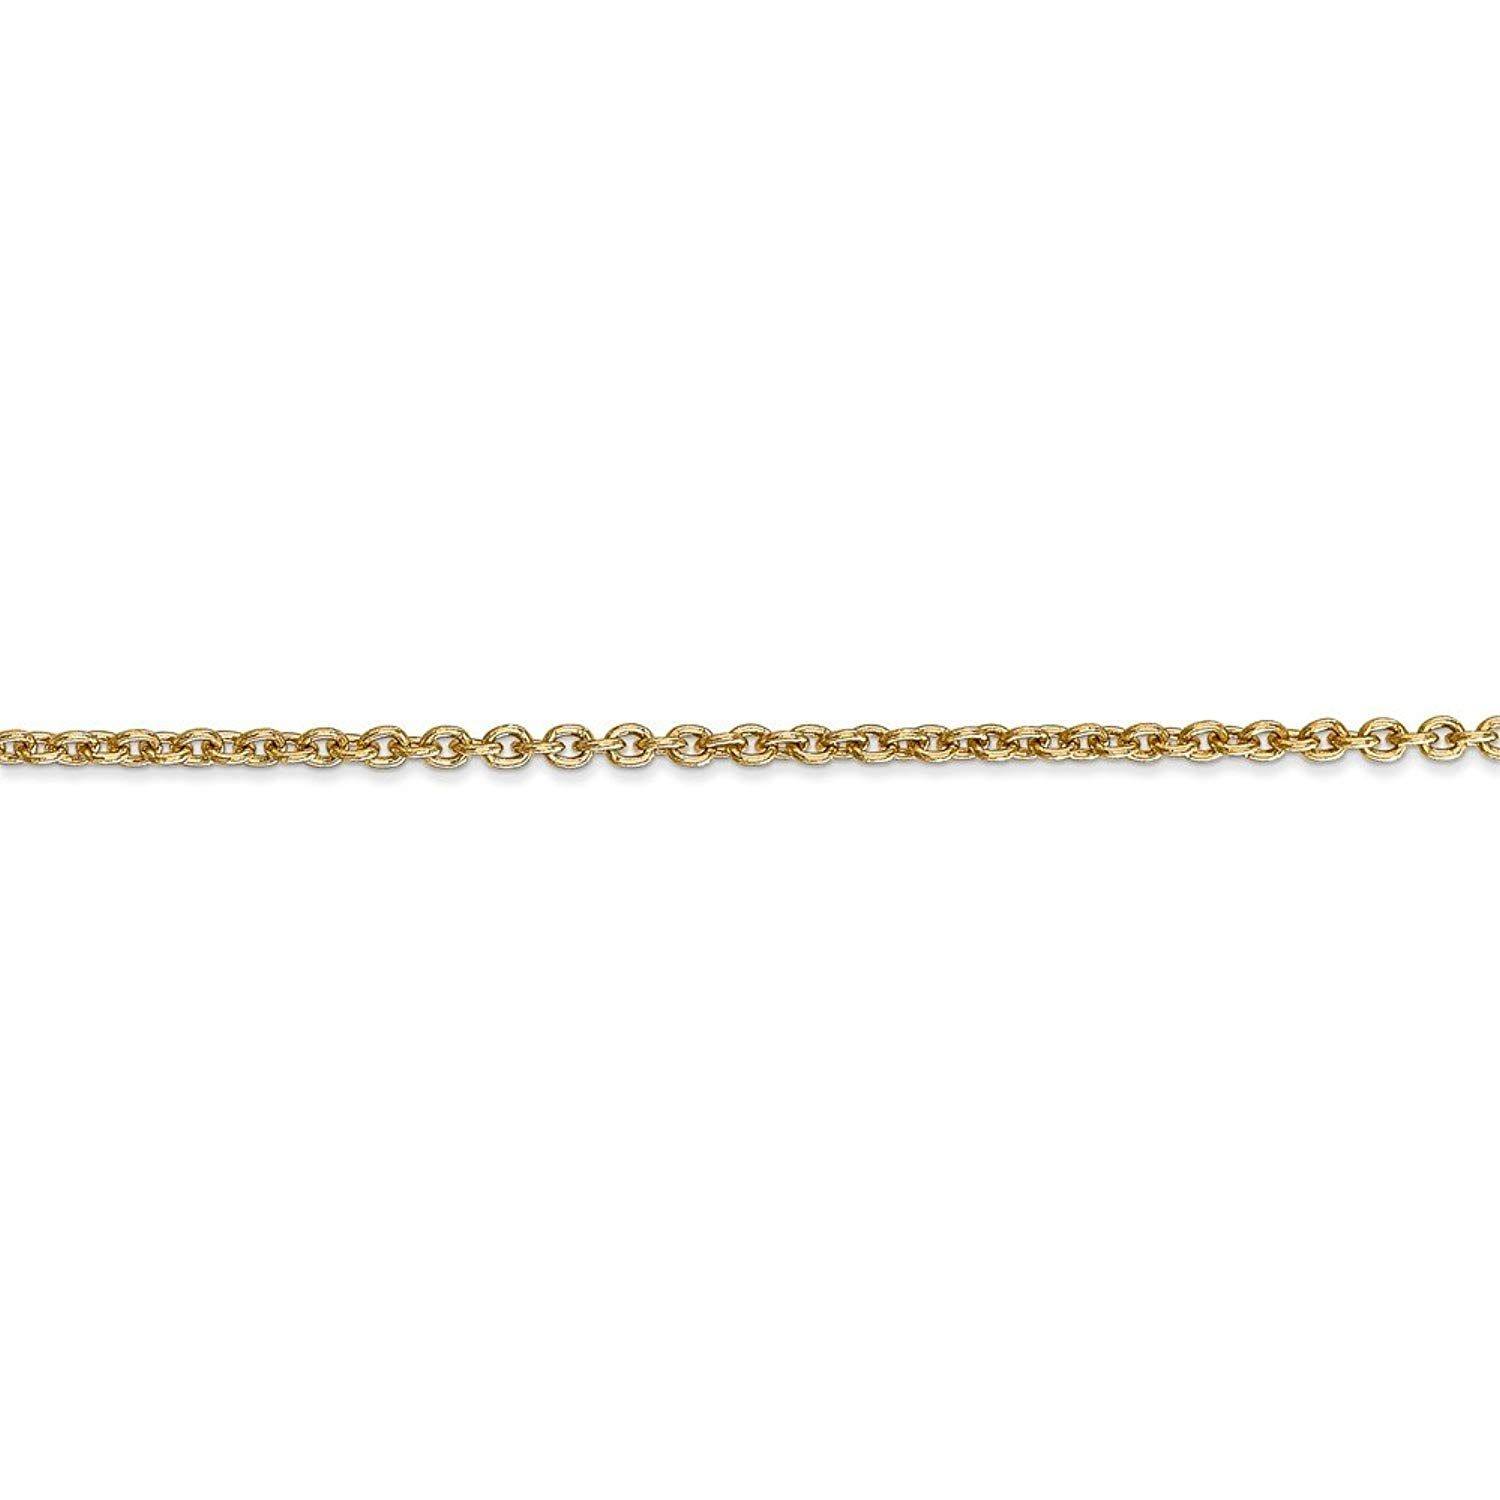 with Secure Lobster Lock Clasp 14k White Gold 1.2mm Solid Diamond-Cut Spiga Chain